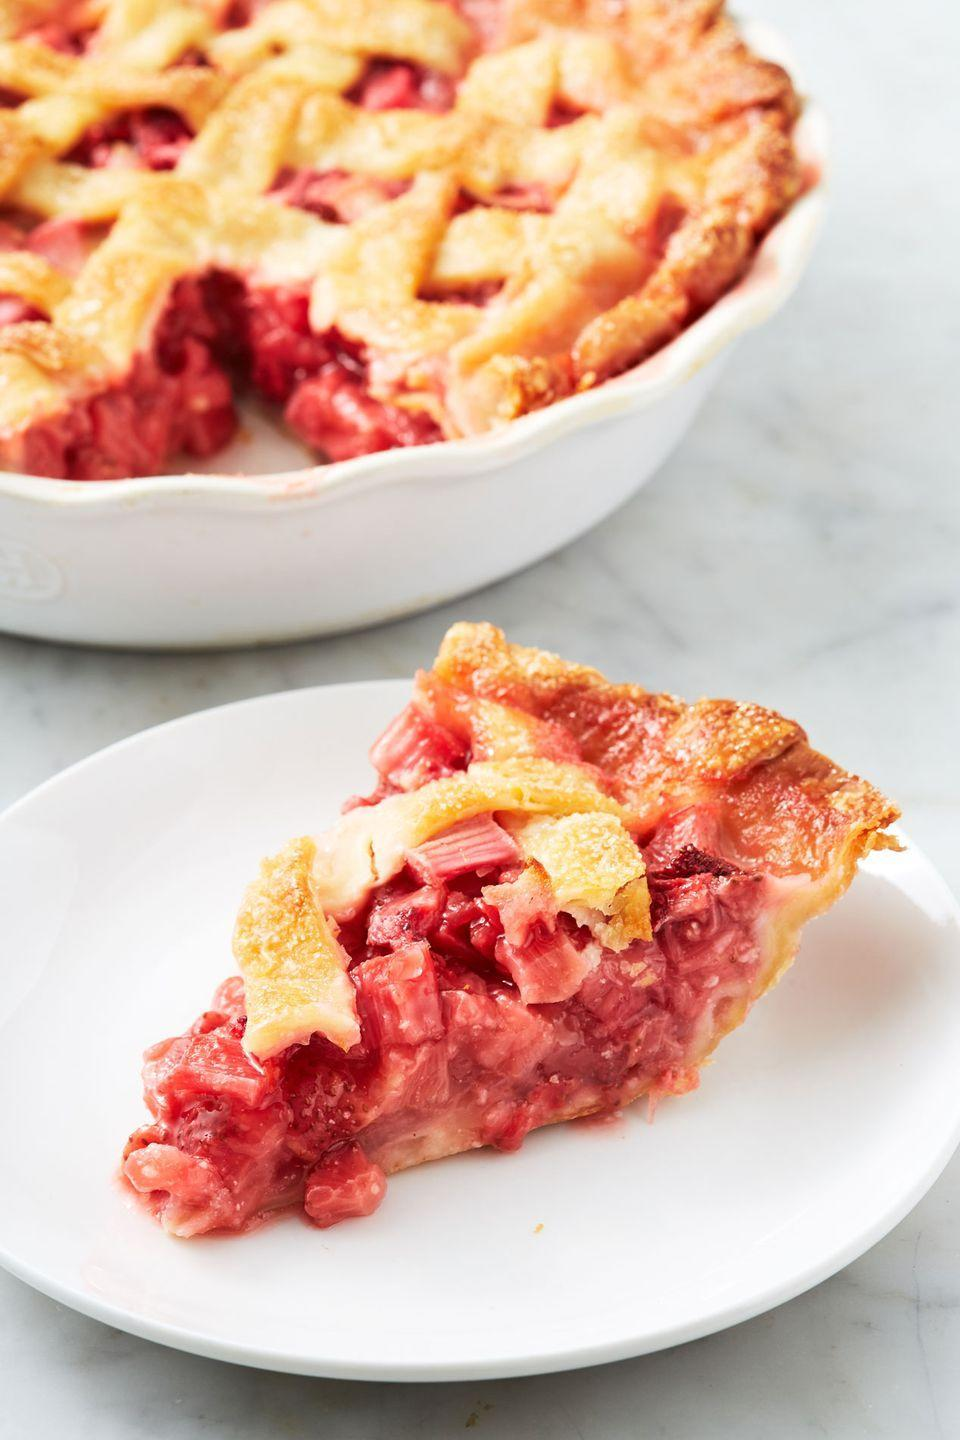 """<p>Strawberry and rhubarb are a perfect pair.</p><p>Get the recipe from <a href=""""https://www.delish.com/cooking/recipe-ideas/recipes/a53154/best-strawberry-rhubarb-pie-recipe/"""" rel=""""nofollow noopener"""" target=""""_blank"""" data-ylk=""""slk:Delish."""" class=""""link rapid-noclick-resp"""">Delish.</a></p>"""